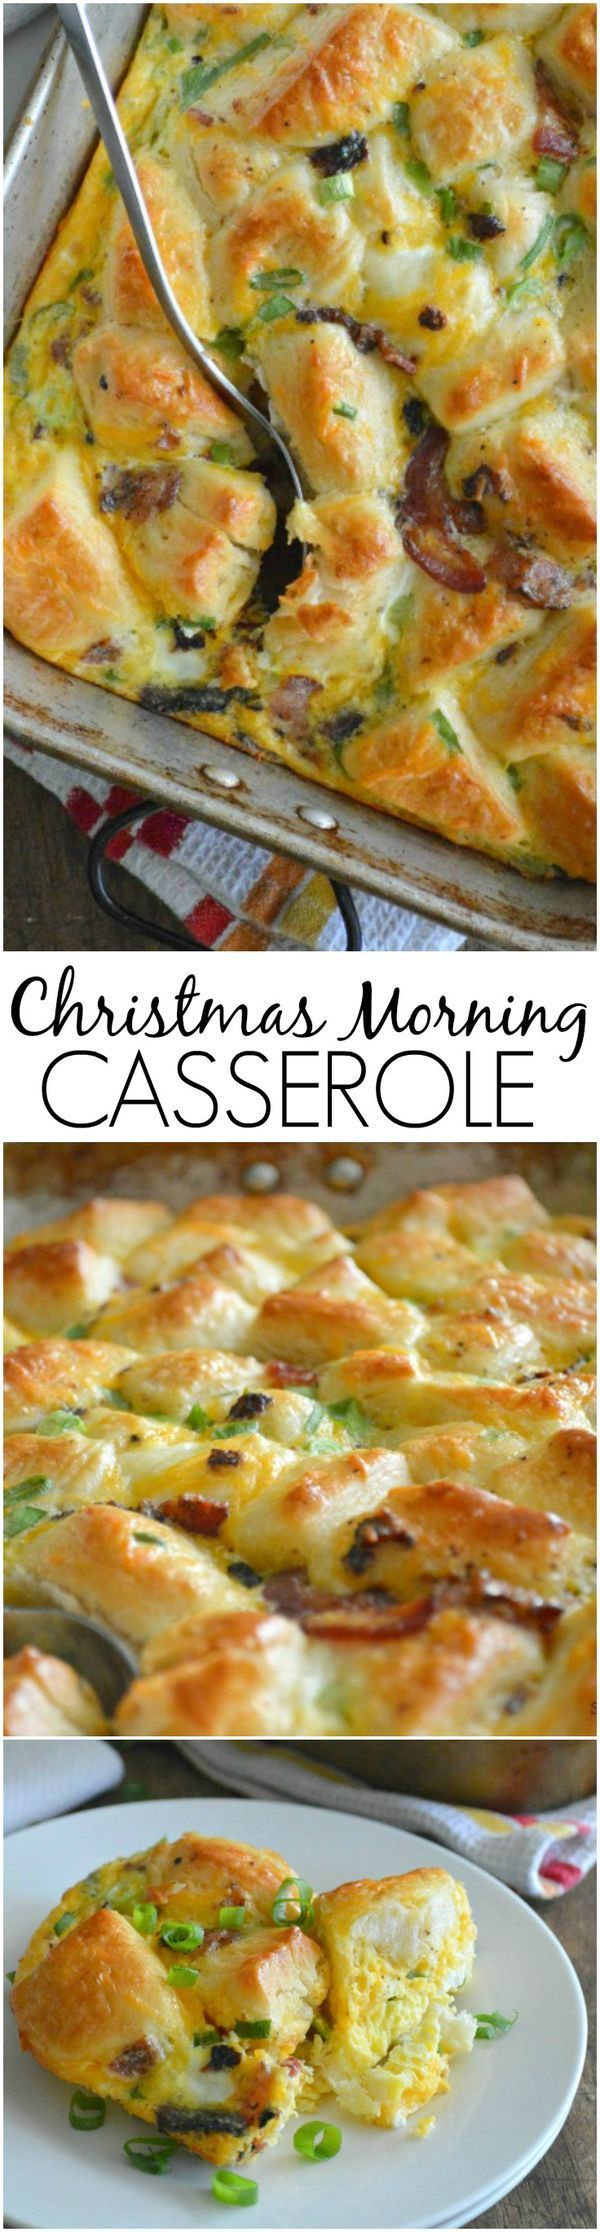 A super simple casserole made with refrigerated biscuits, eggs, cheese, and bacon. Christmas Morning Casserole is perfect for long lazy mornings with family and friends. http://www.sugardishme.com/christmas-morning-casserole/